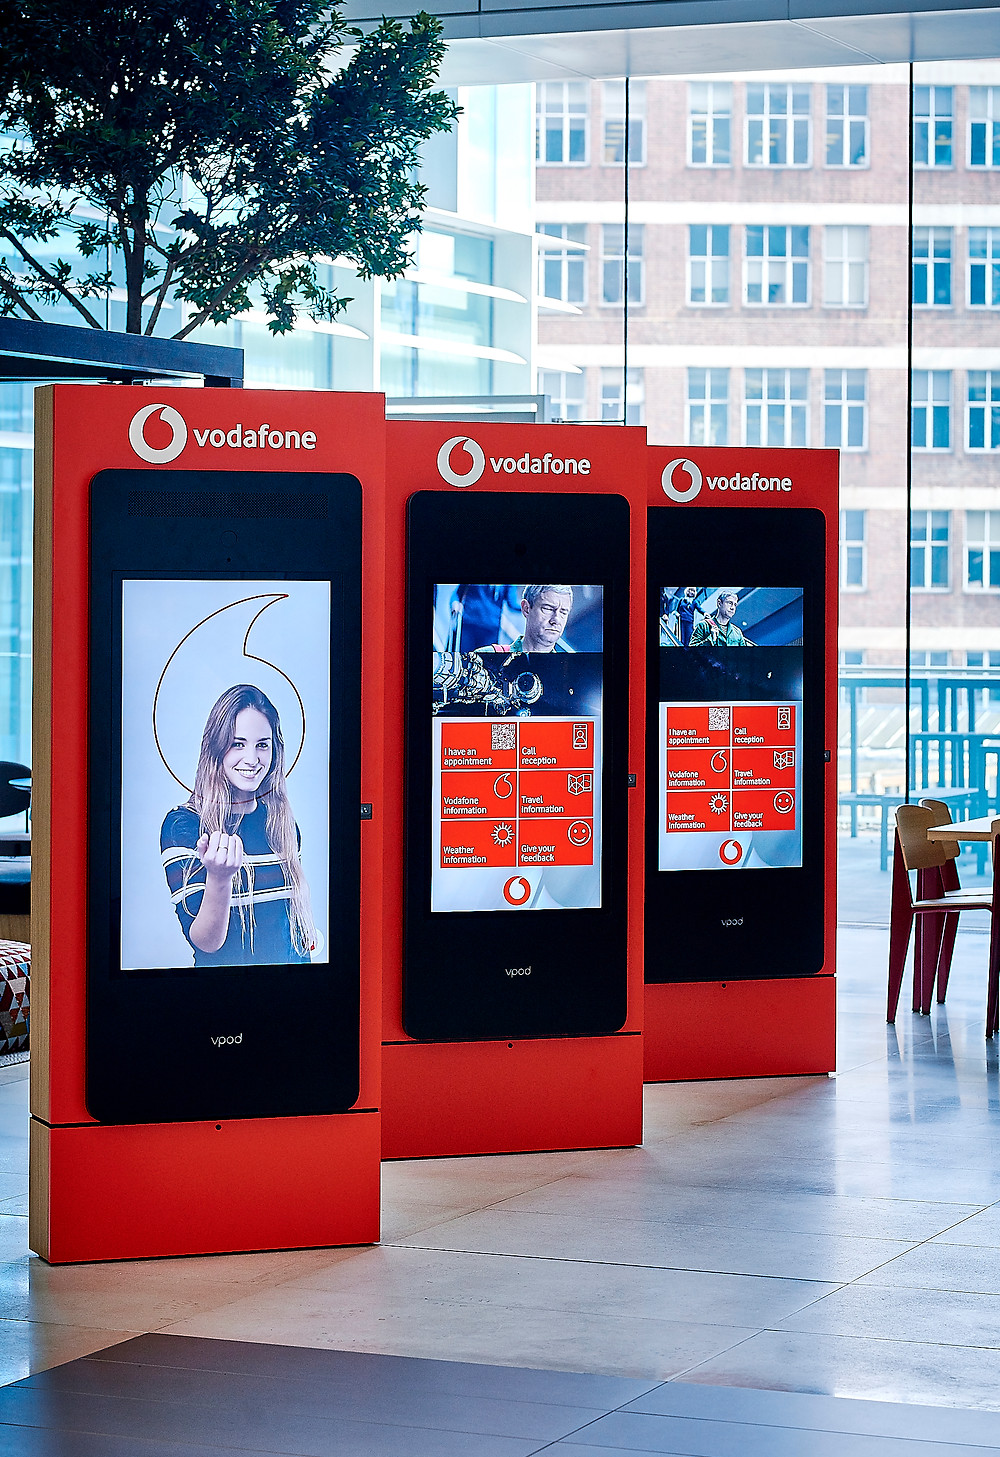 VPod Vgreet Motion and Voice activated check-in kiosks, Communication Edge